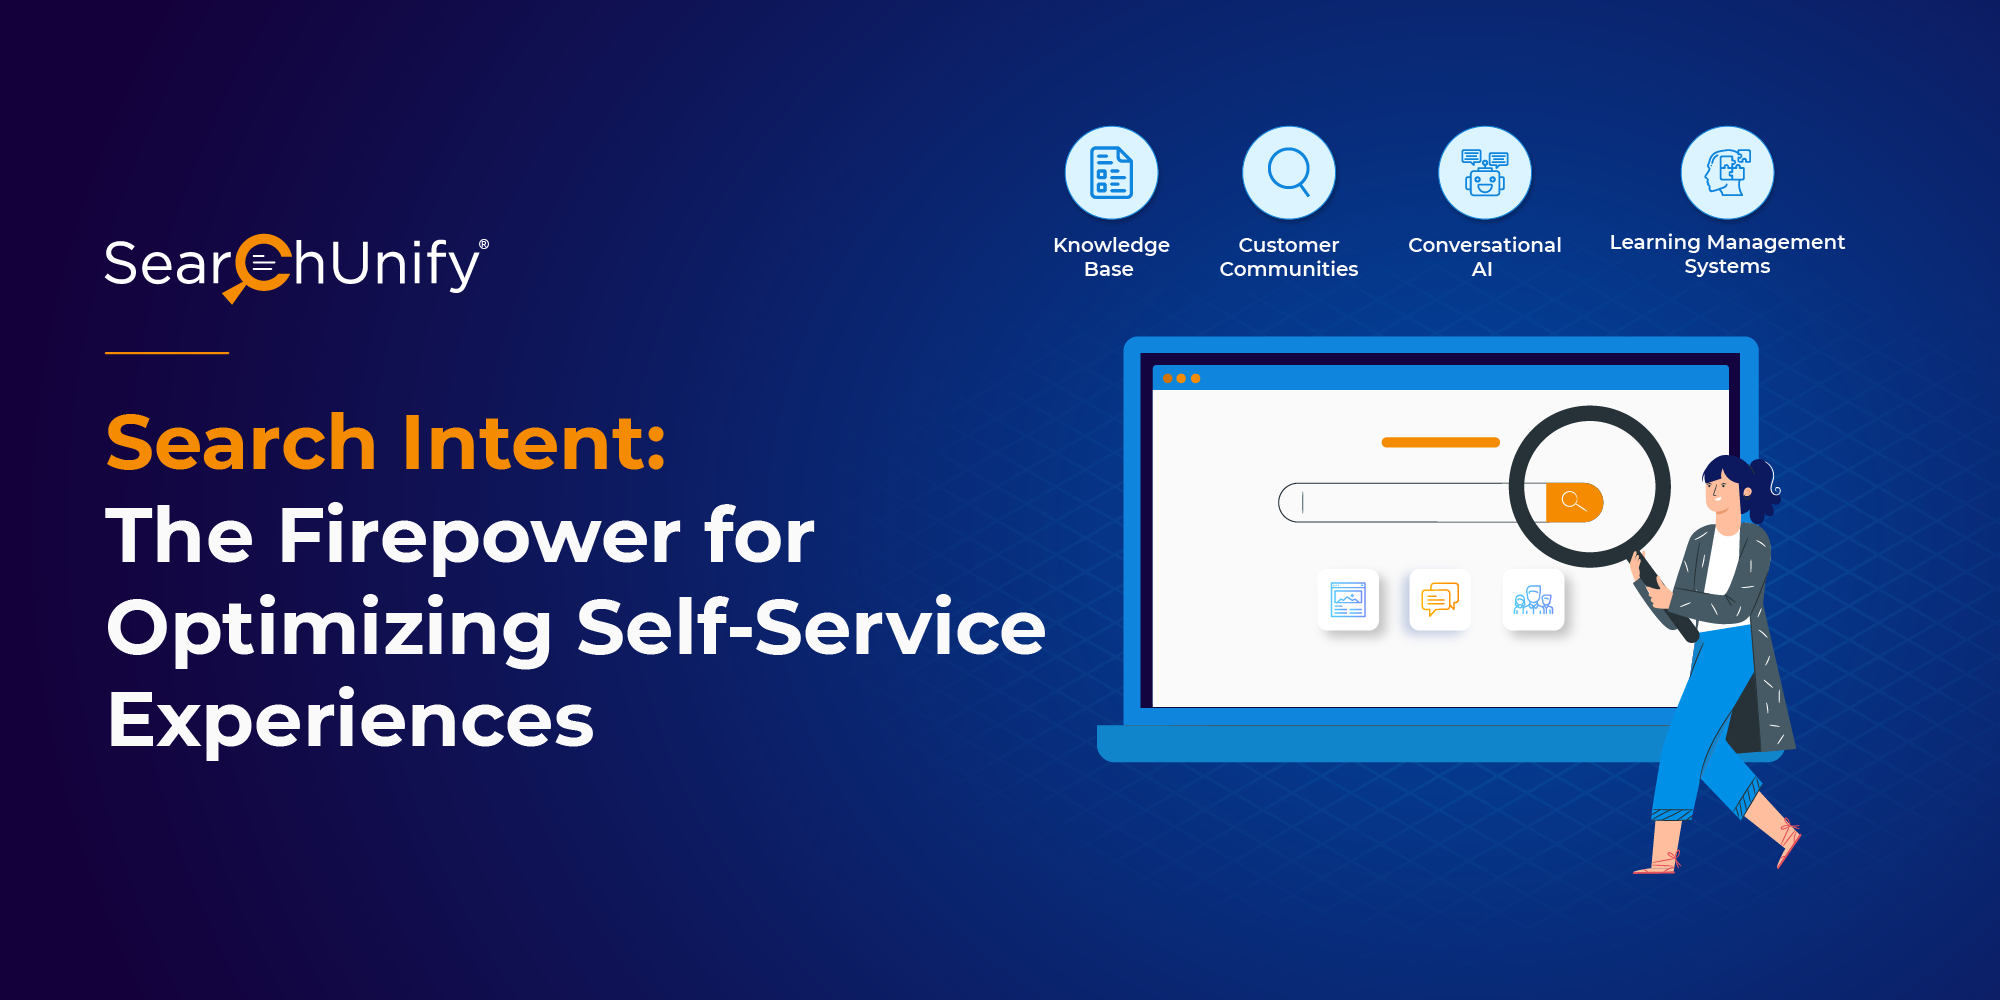 Search Intent: The Firepower for Optimizing Self-Service Experiences